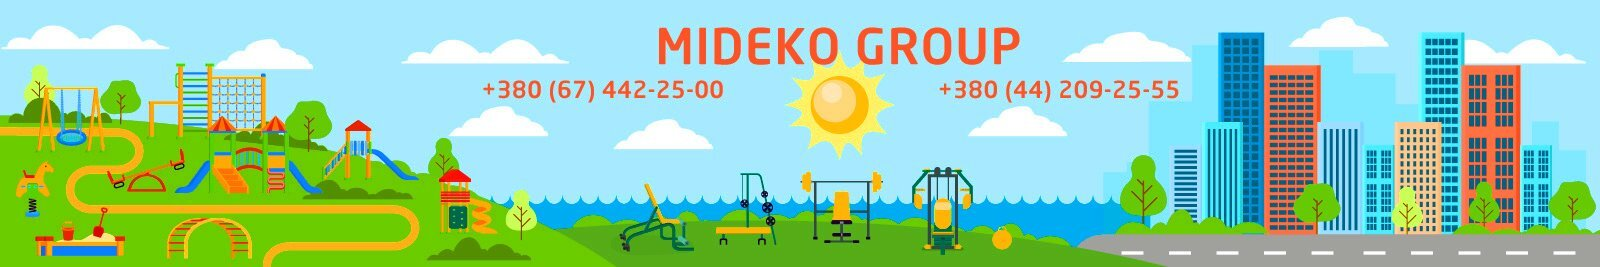 MIDEKO GROUP